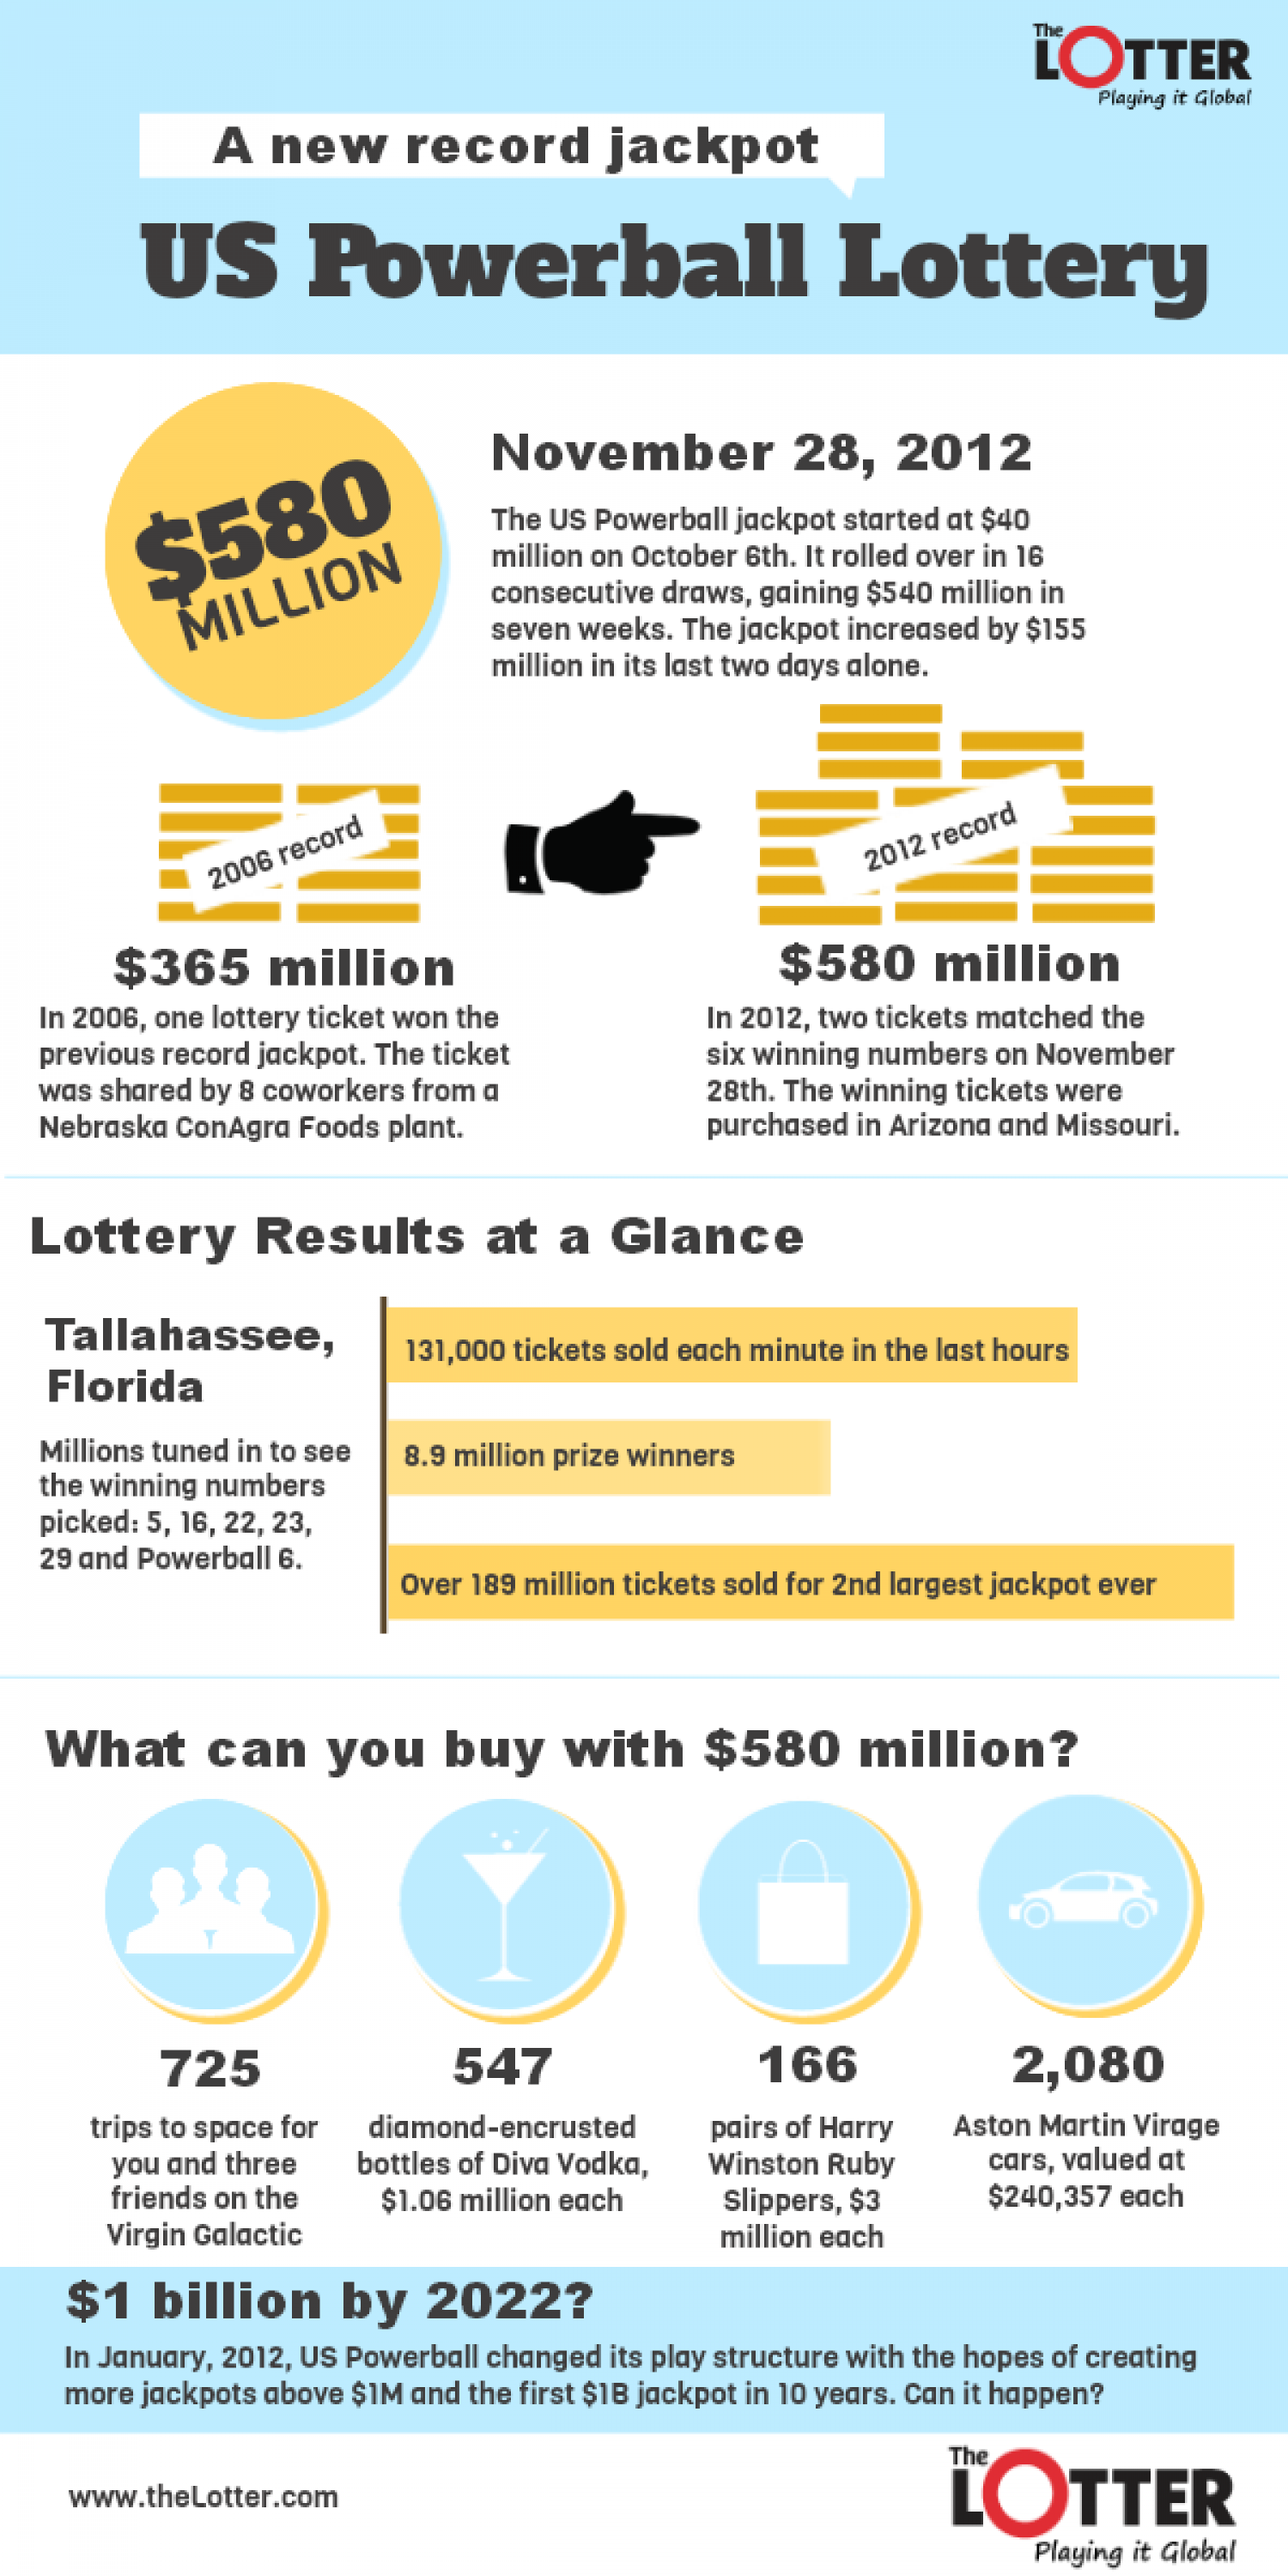 US Powerball Jackpot Sets Personal Best Infographic